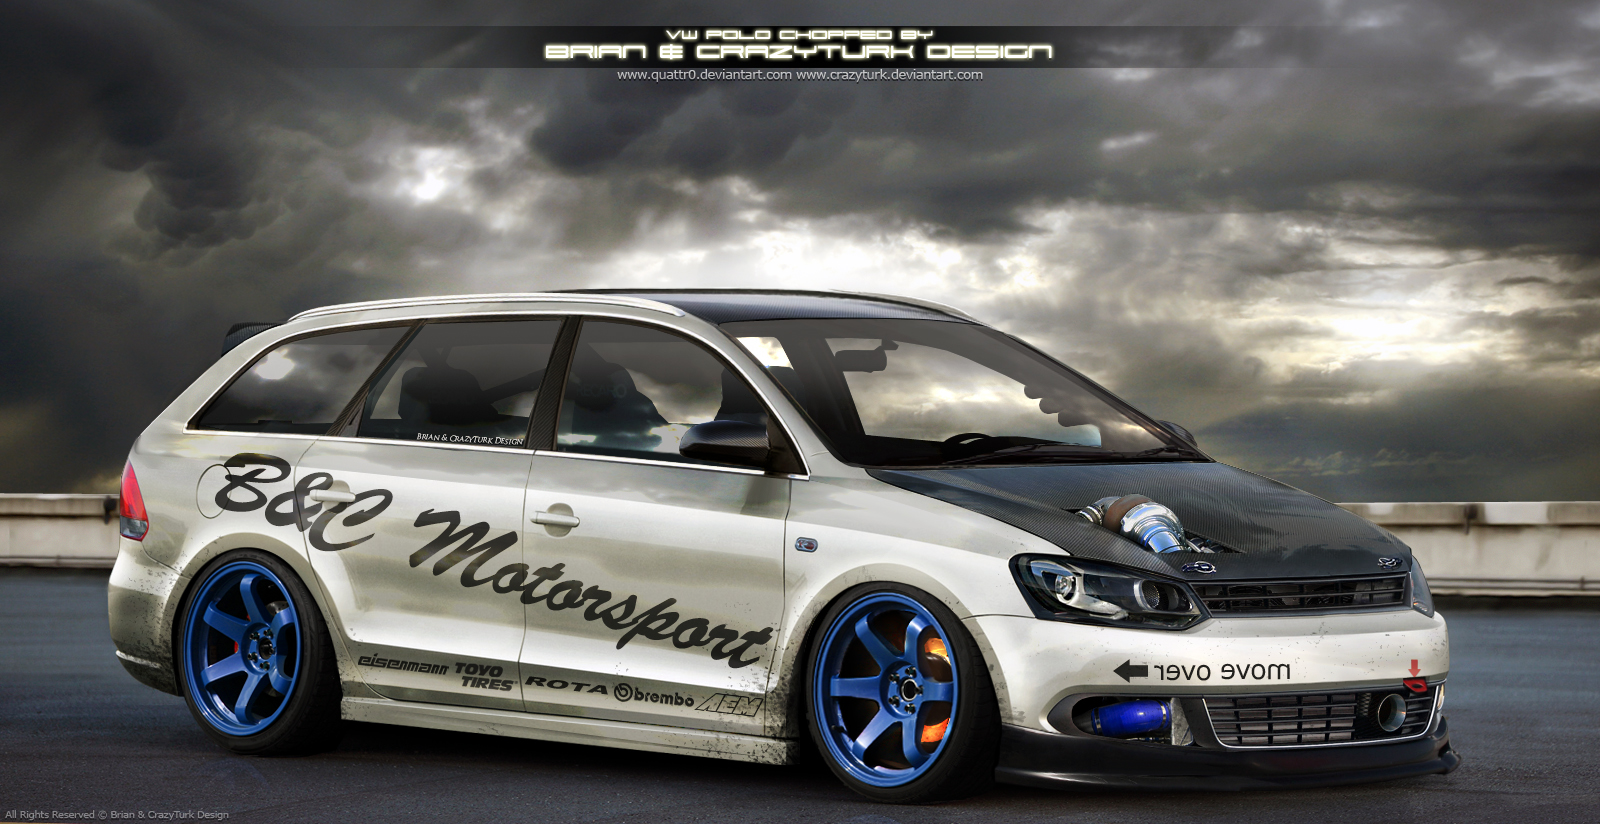 VW Polo Teamchop by Quattr0